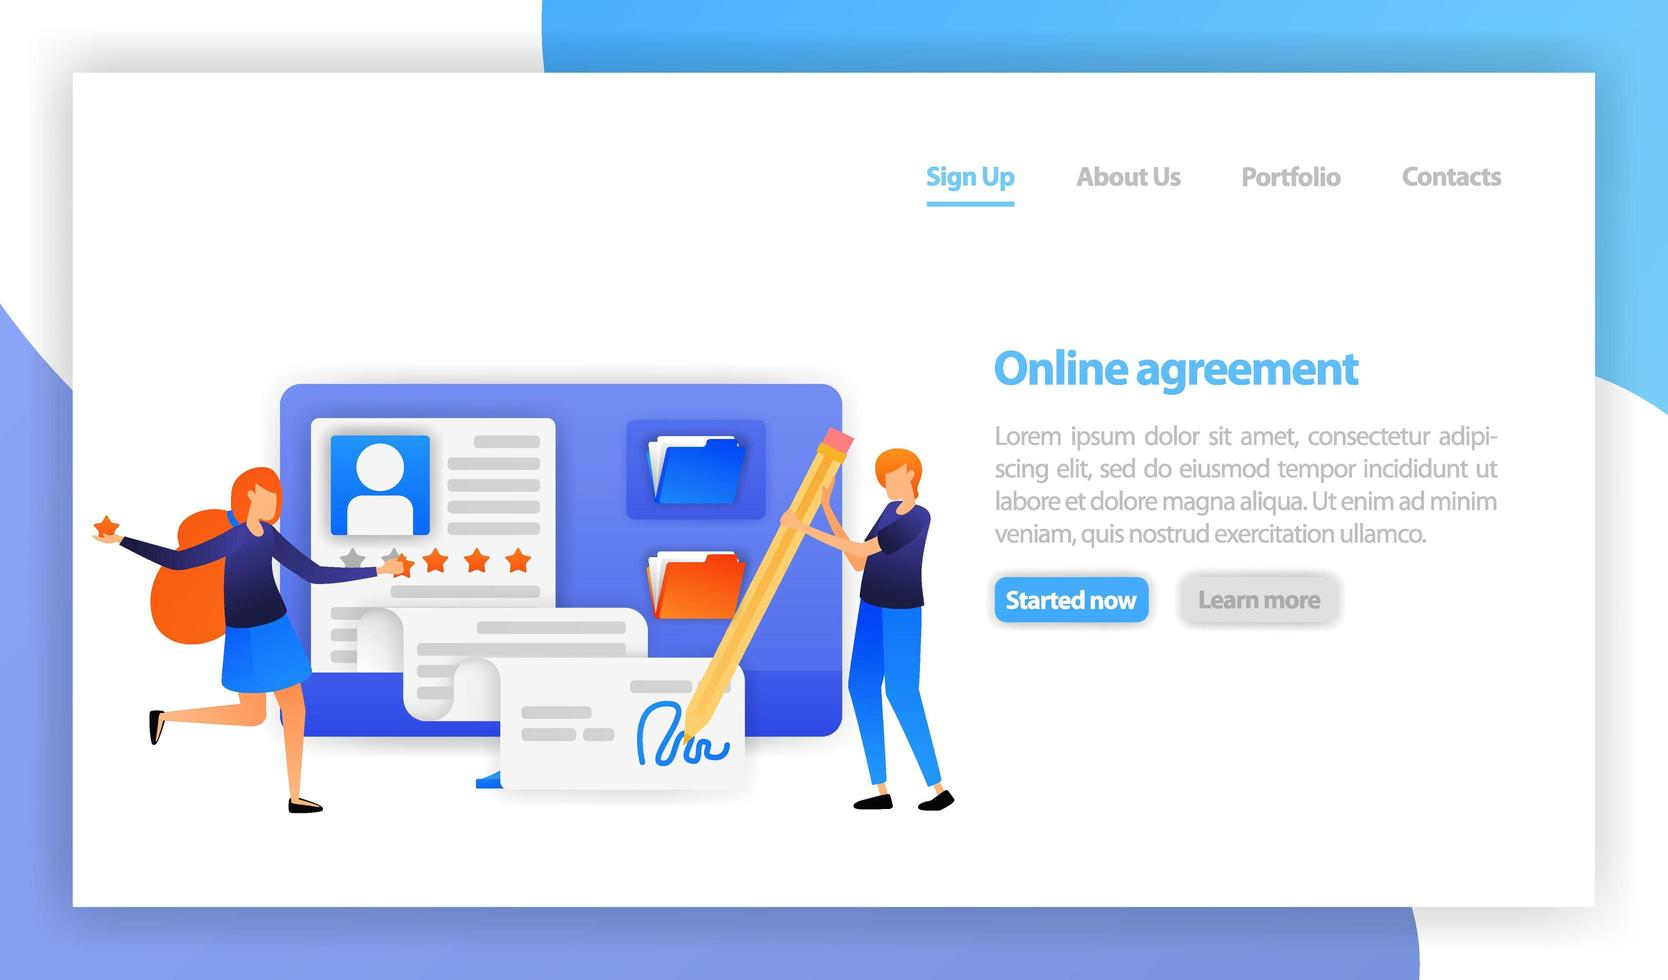 flat vector illustration for web, banner, landing page, mobile, UI. businessman signing online contract agreement with computer. smart digital agreement sign. Partnership, deal, negotiations concept